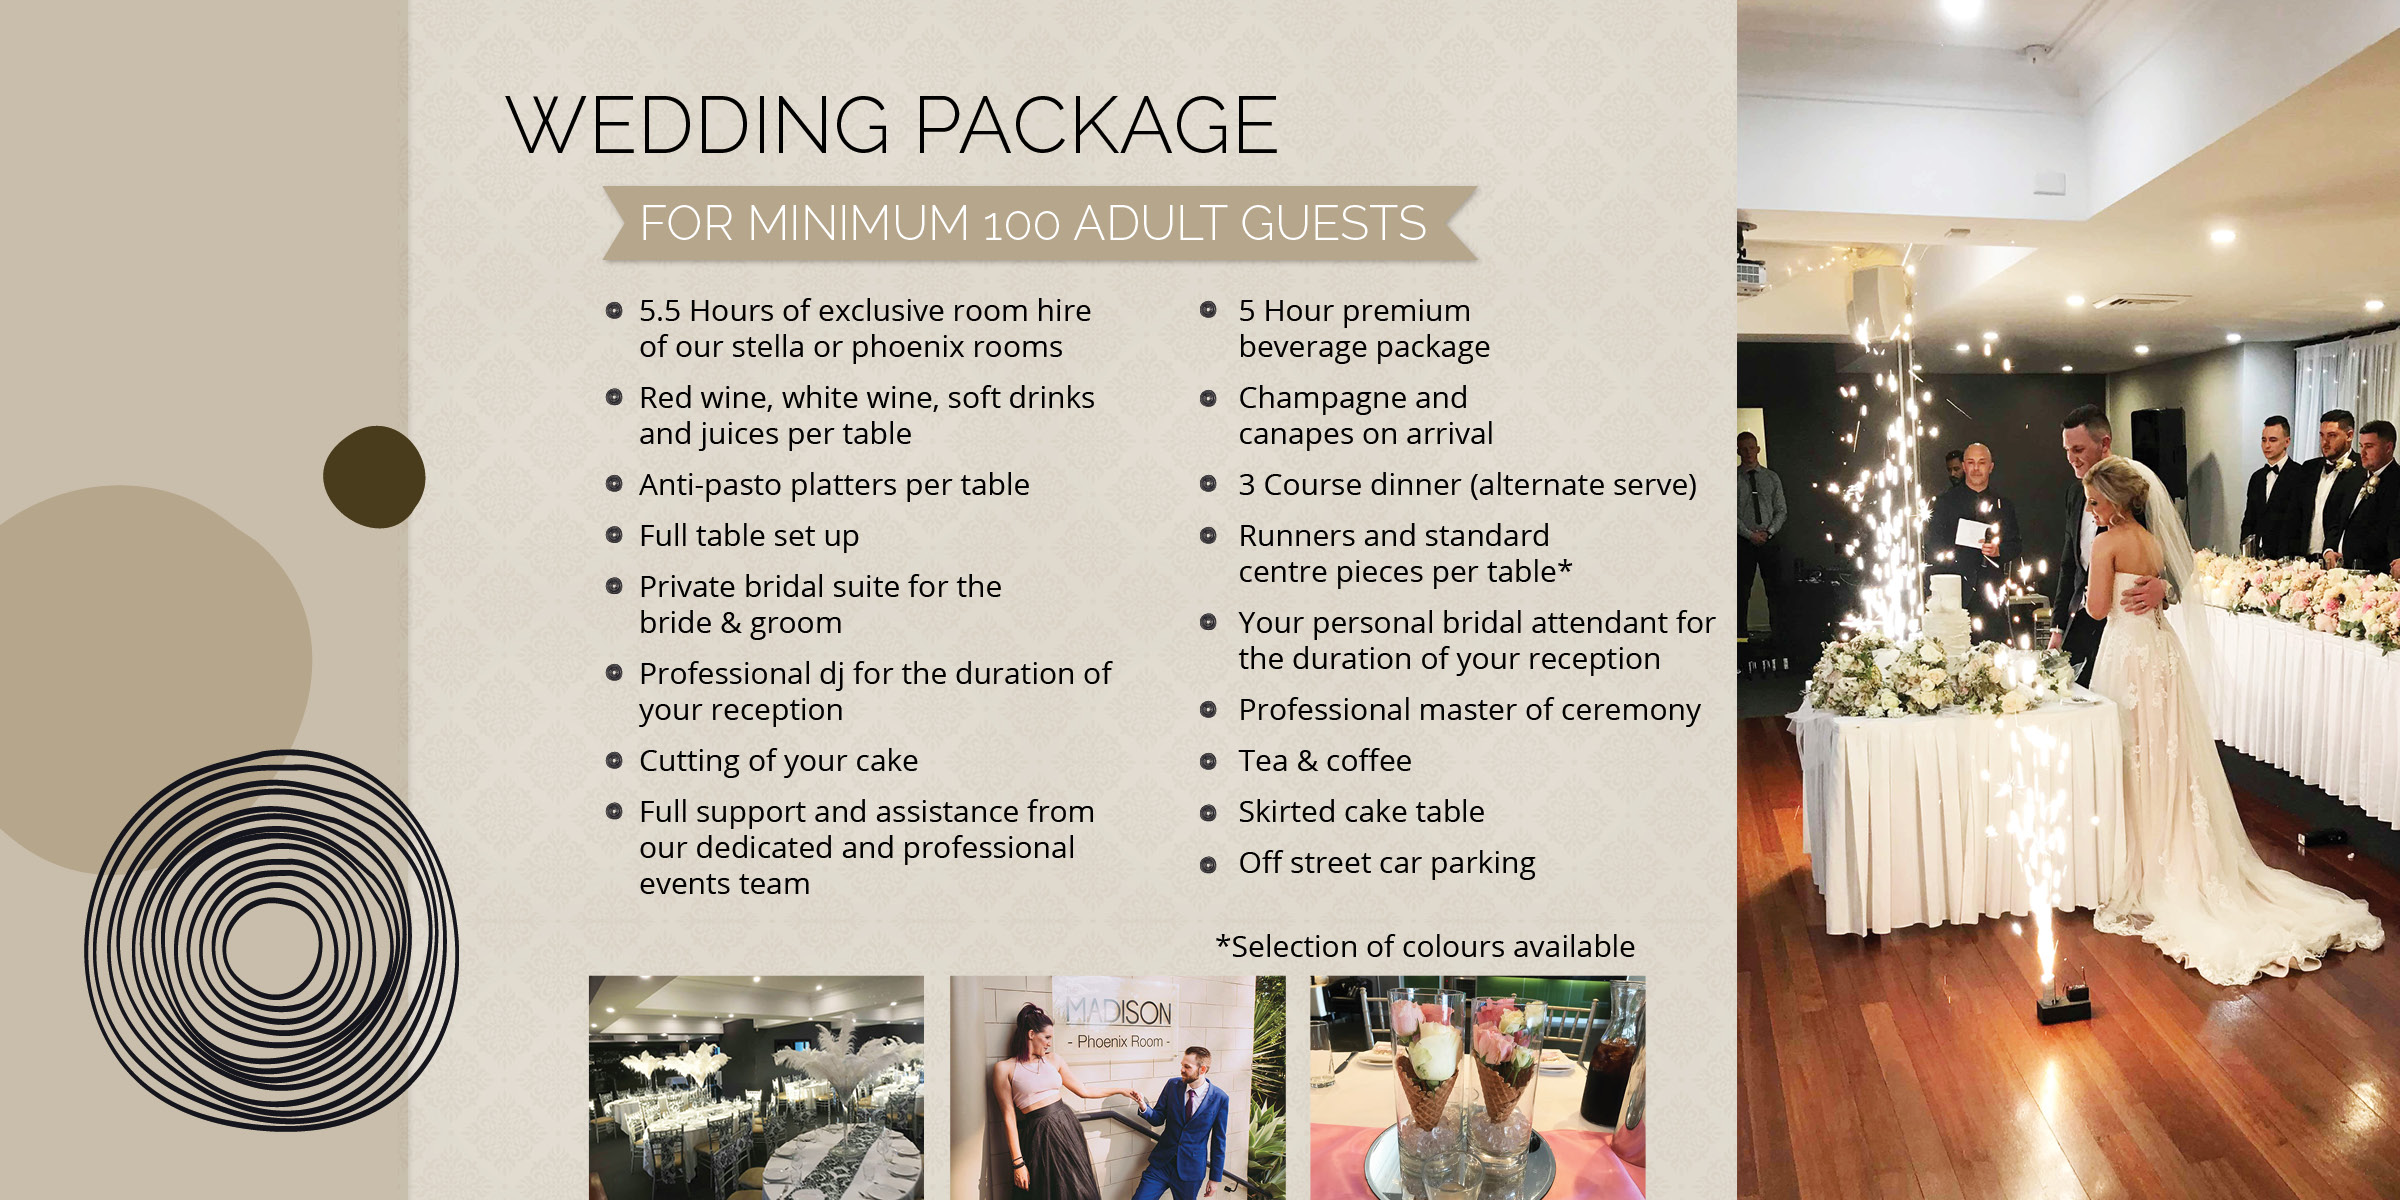 Wedding Packages at Madison